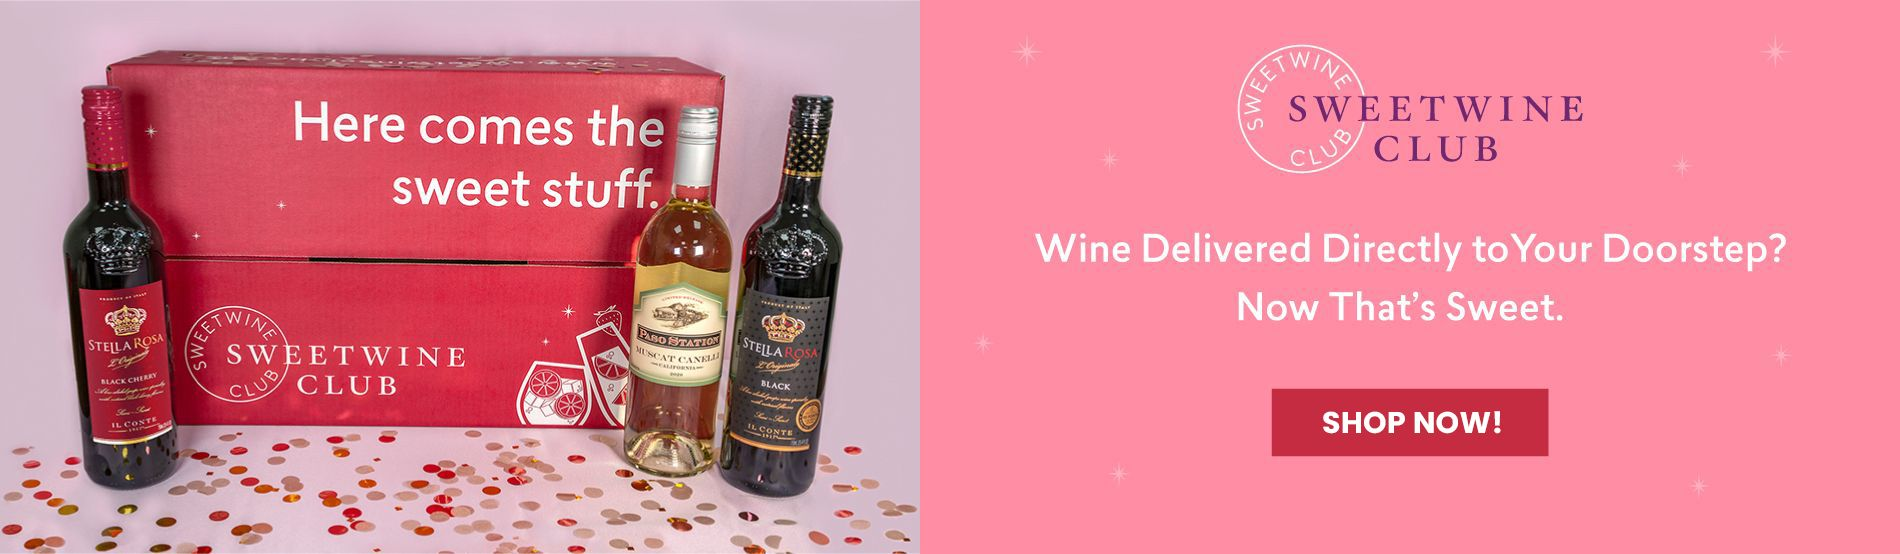 Wine Delivered Directly to Your Doorstep? Now That's Sweet. Learn more.